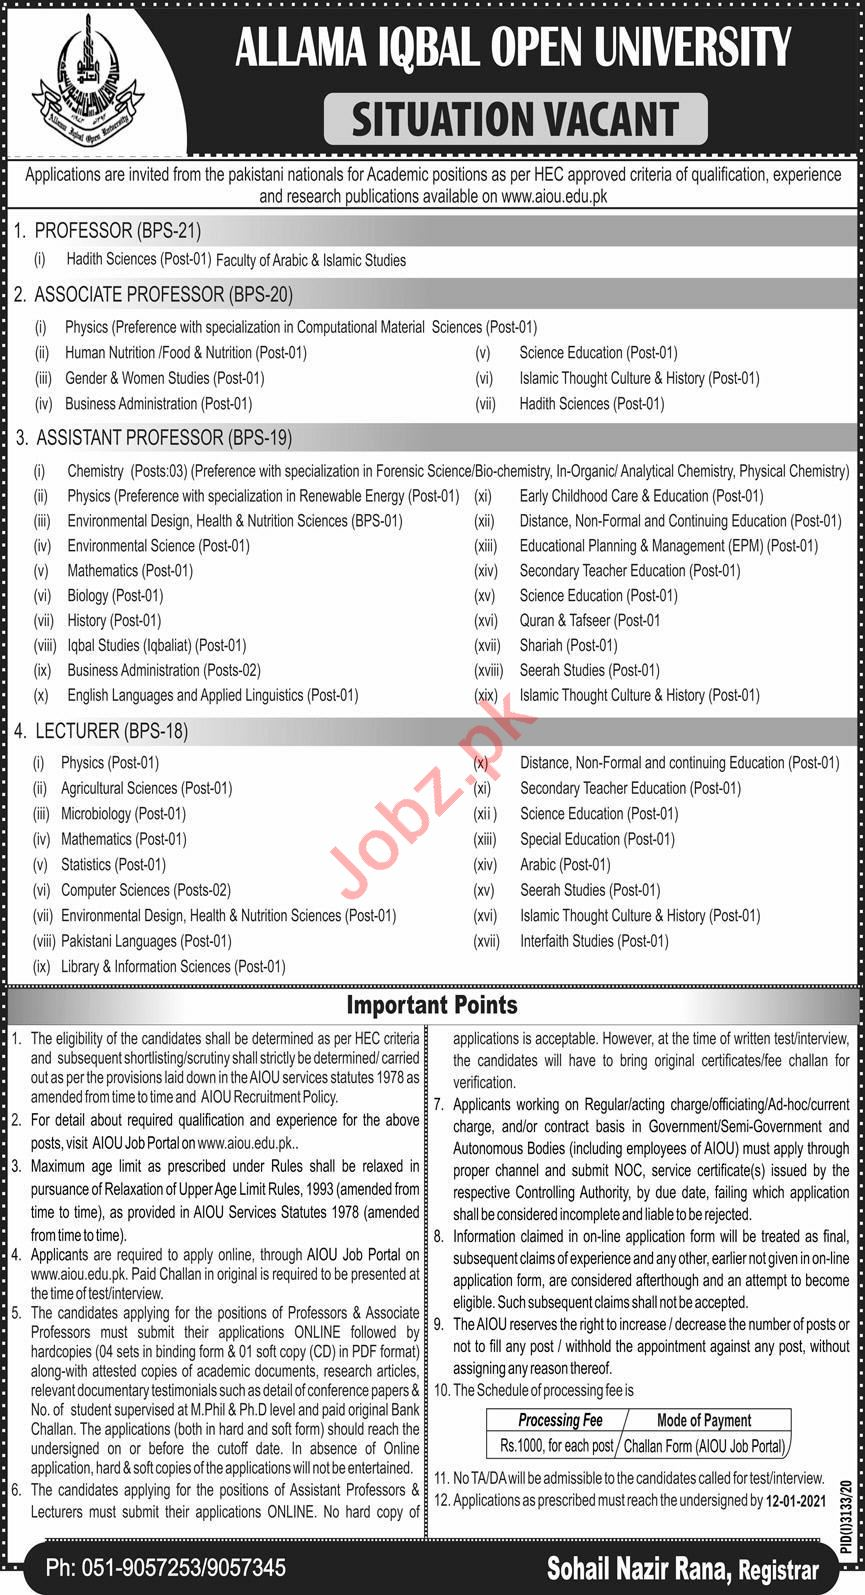 AIOU University Islamabad Jobs 2021 for Professor & Lecturer